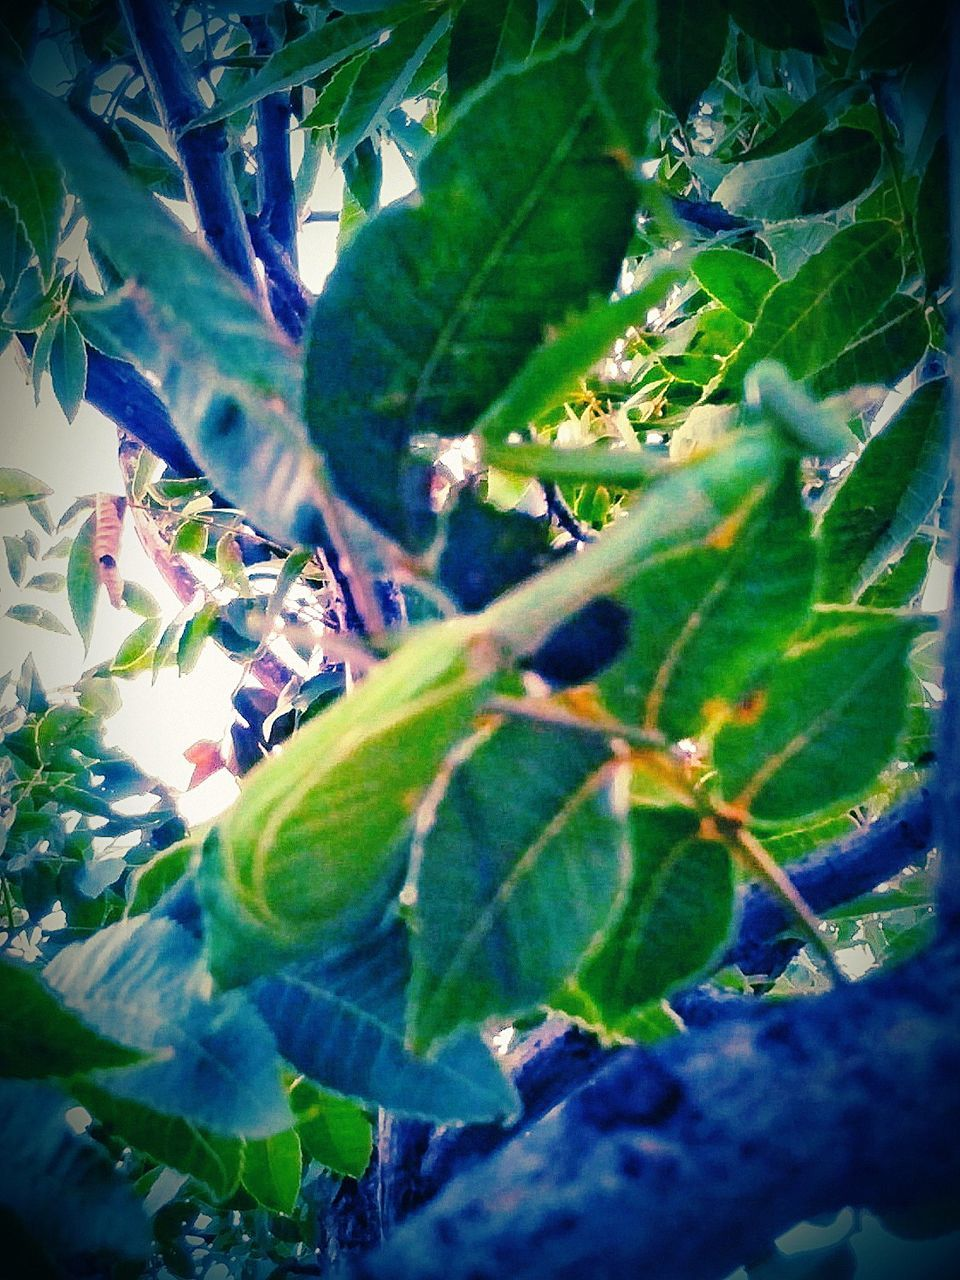 leaf, growth, nature, green color, plant, tree, no people, day, outdoors, beauty in nature, close-up, branch, freshness